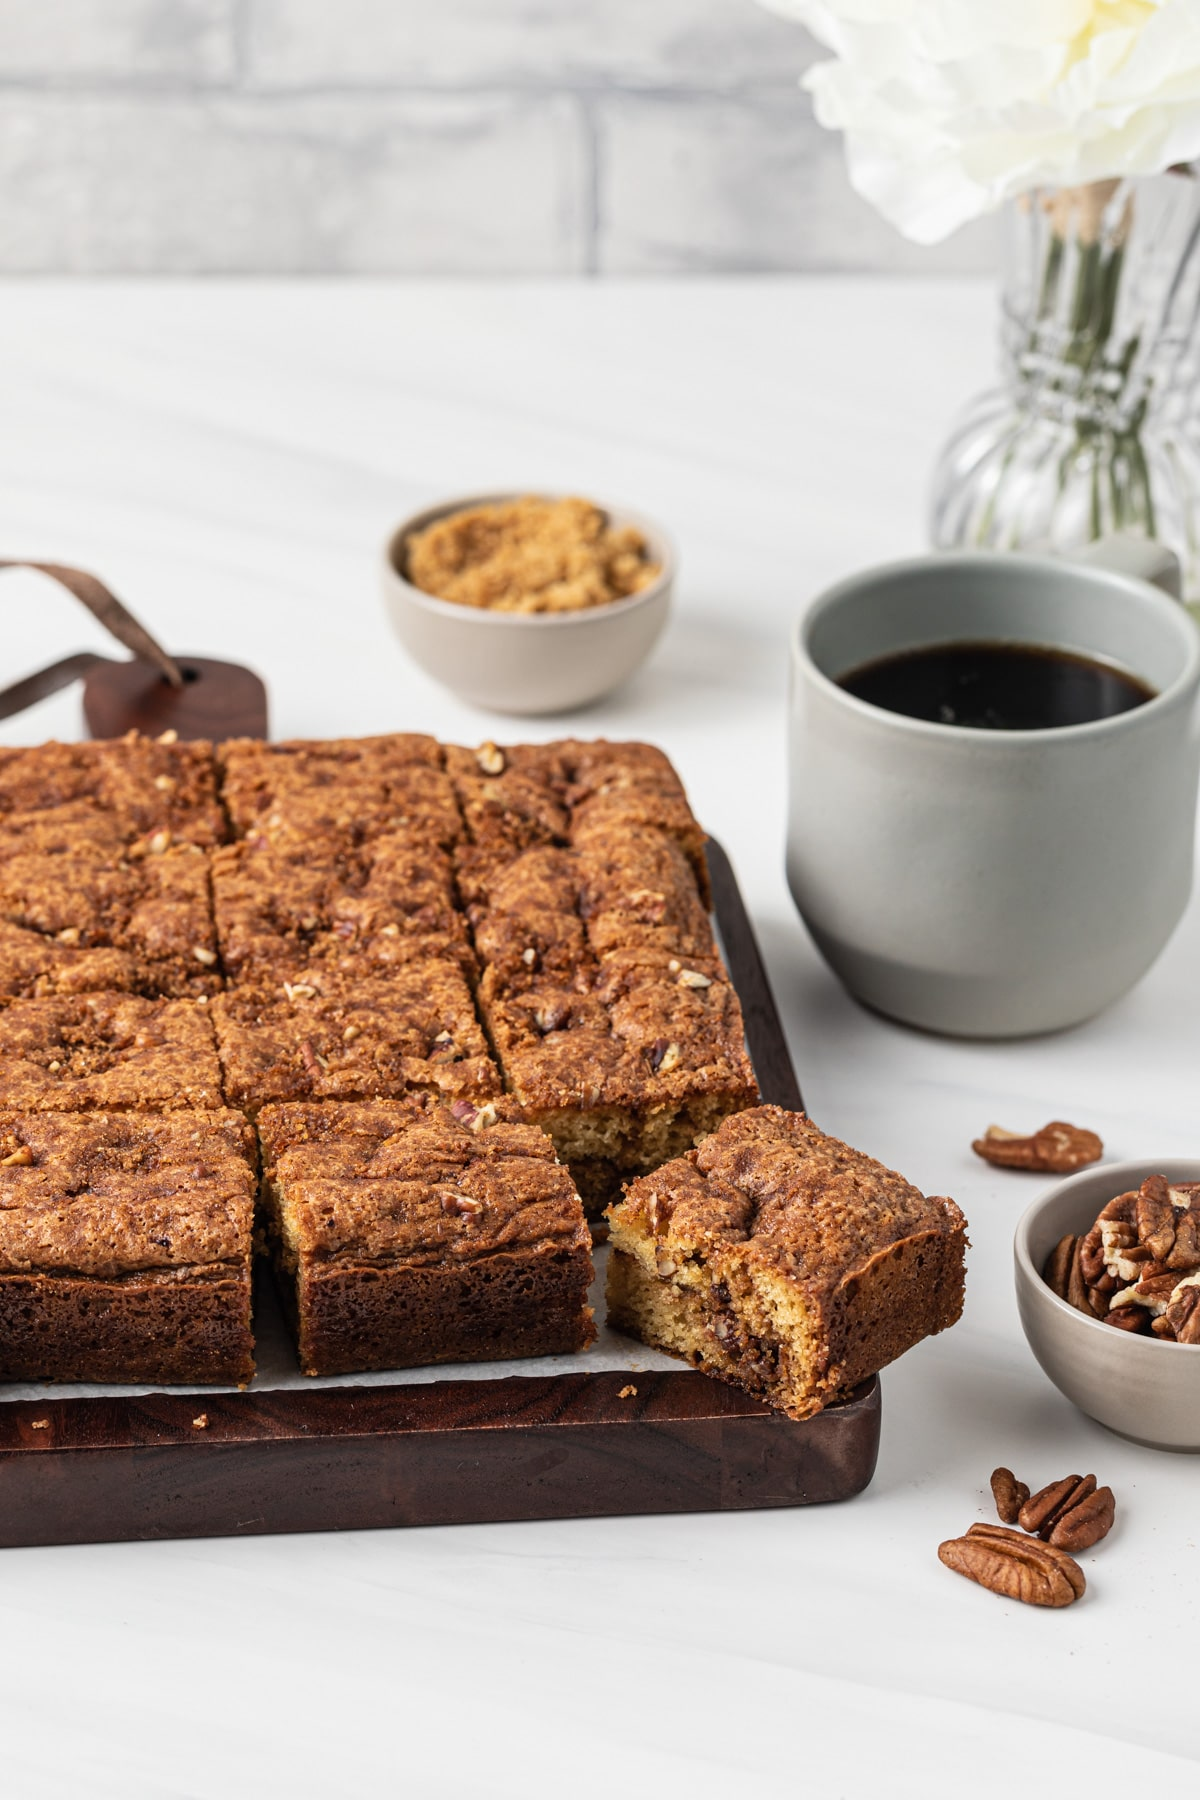 sliced coffee cake on wooden board with cup of coffee